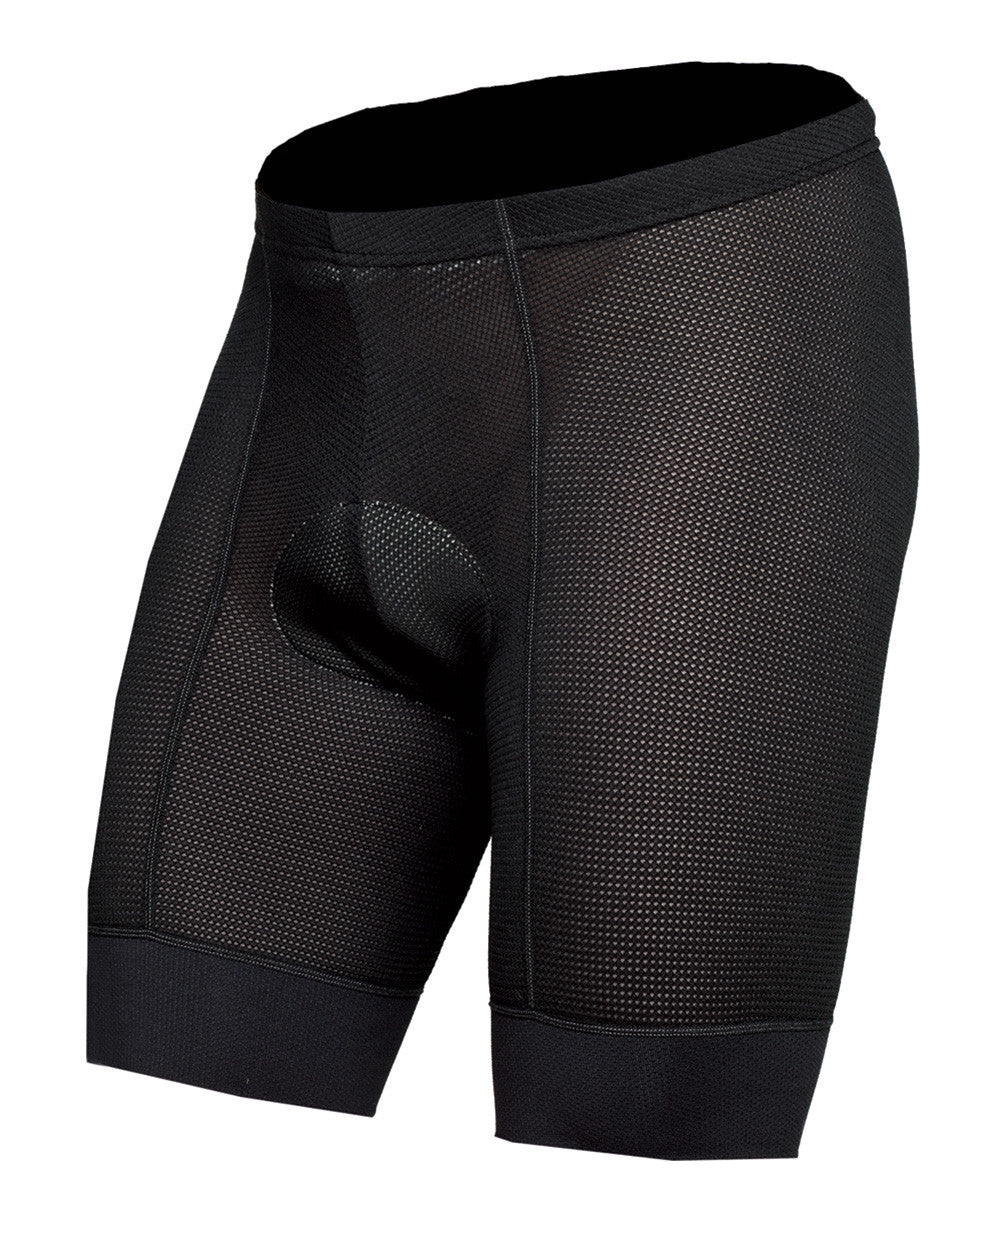 f30c14284 Ground Effect Underdogs - mesh lycra cycle liner